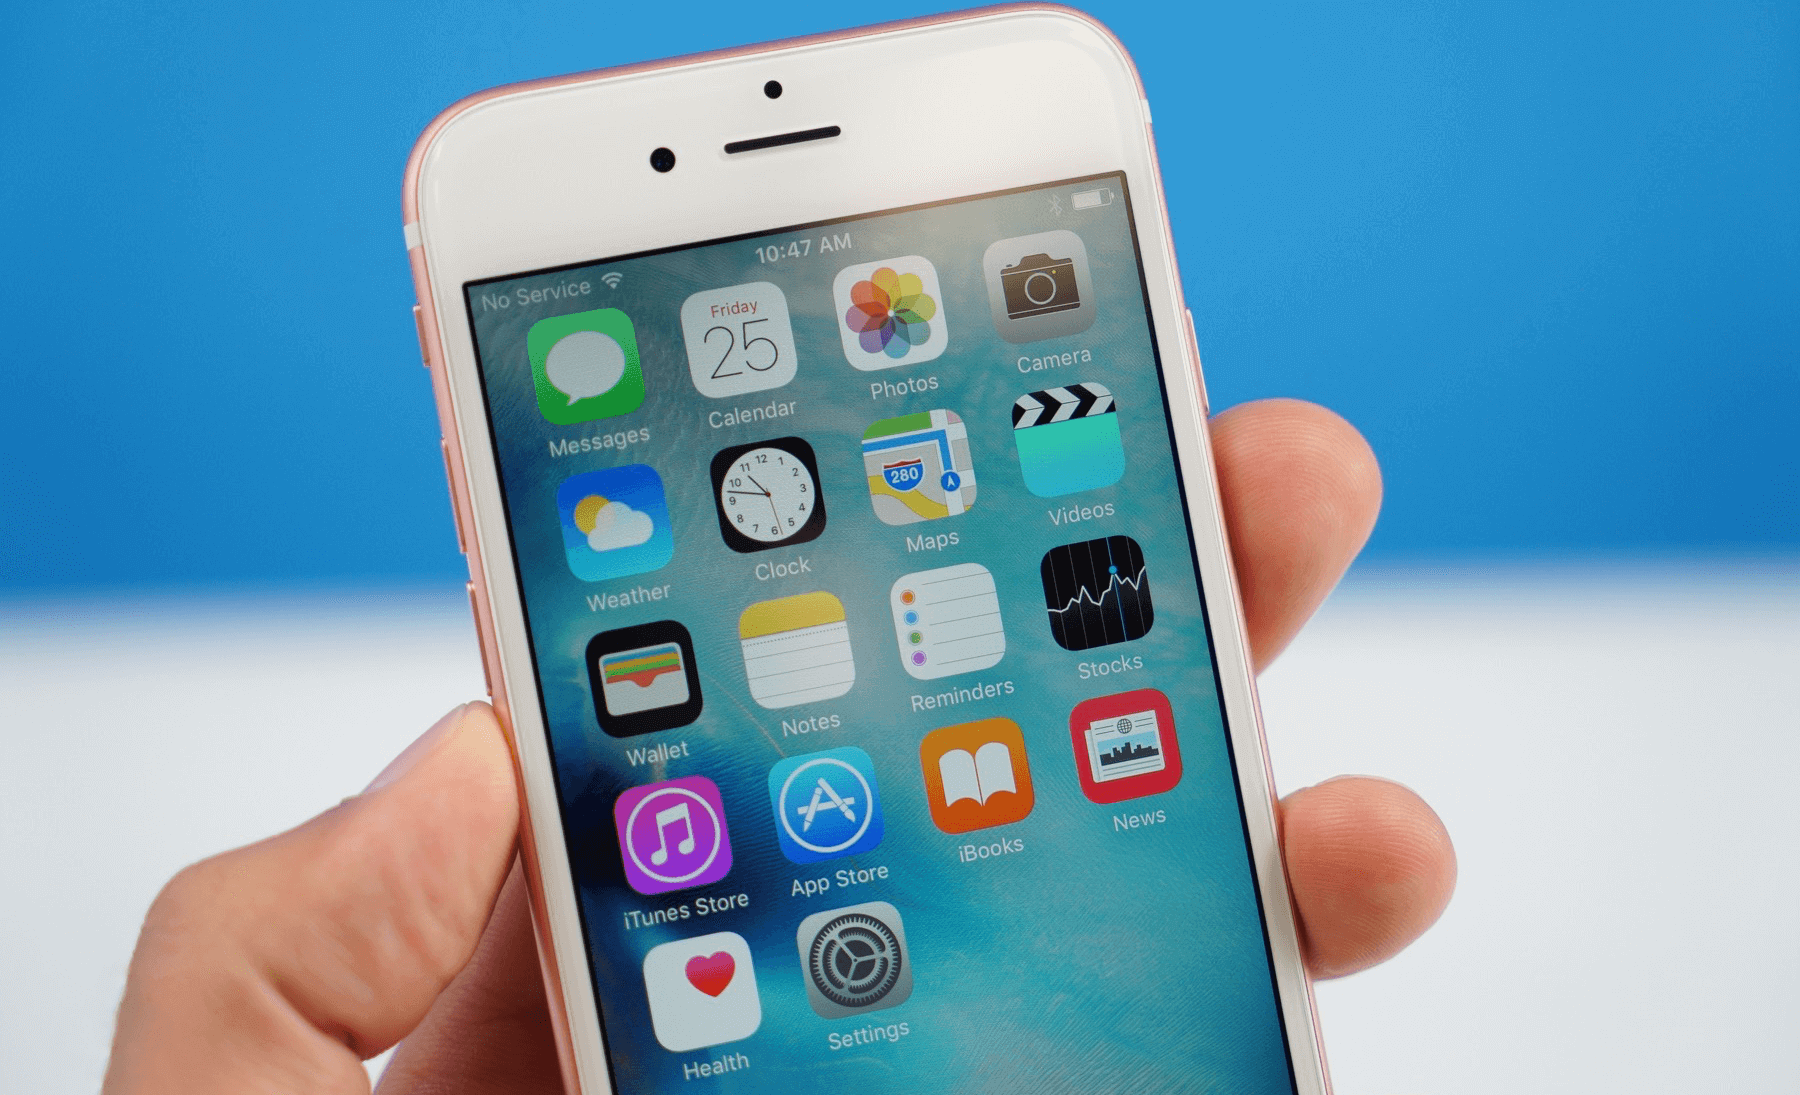 You won't be able to install iOS 9.2